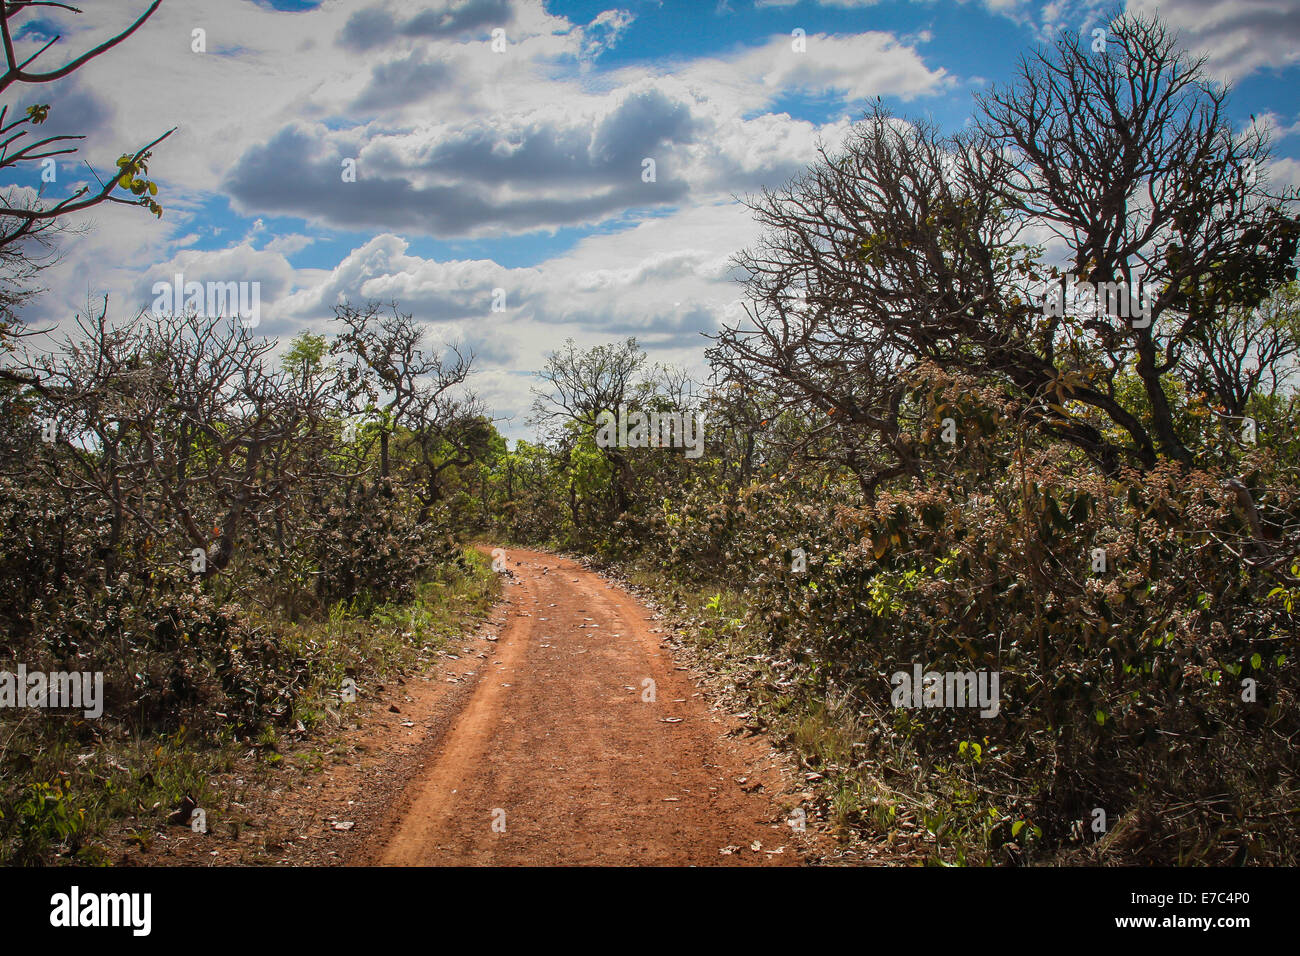 Road to nowhere - Hot country road leading to no destination - Stock Image